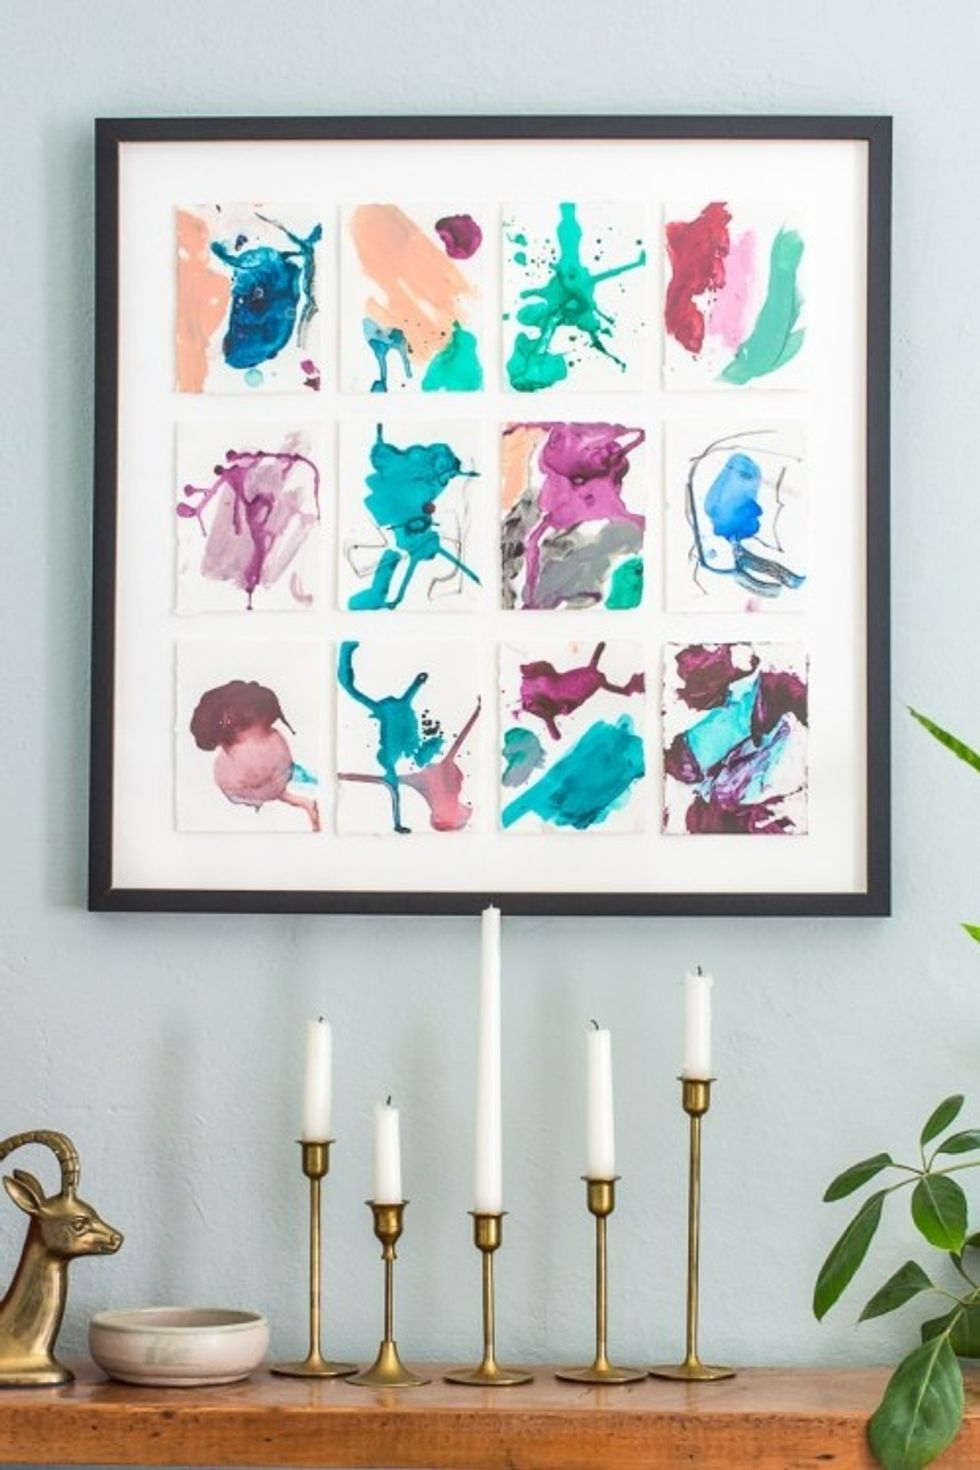 Diy Wall Decor With Pictures  from www.brit.co